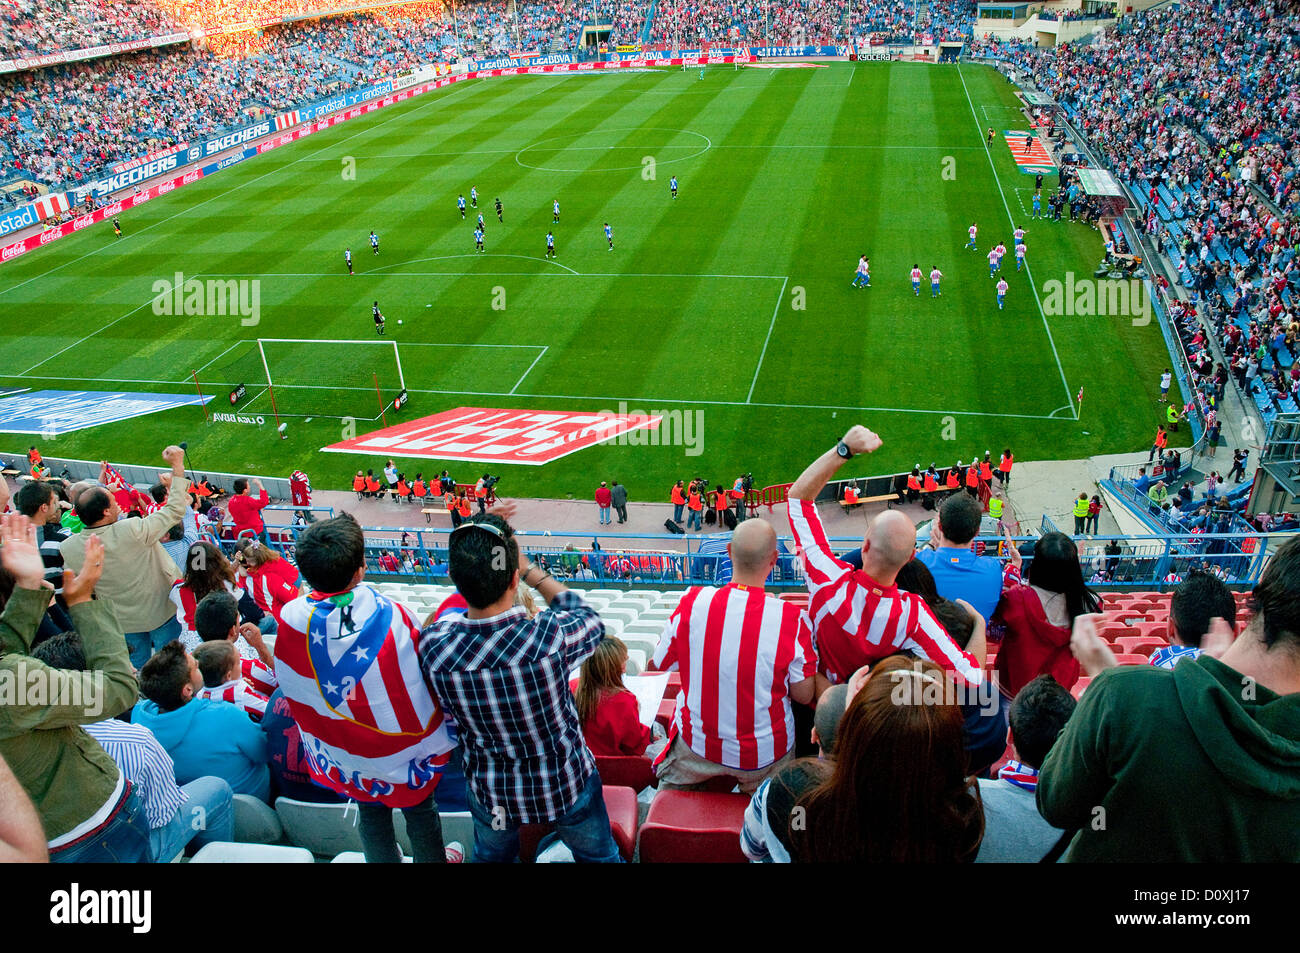 People celebrating a goal in the Atletico de Madrid-Hercules football match. Vicente Calderon stadium, Madrid, Spain. - Stock Image